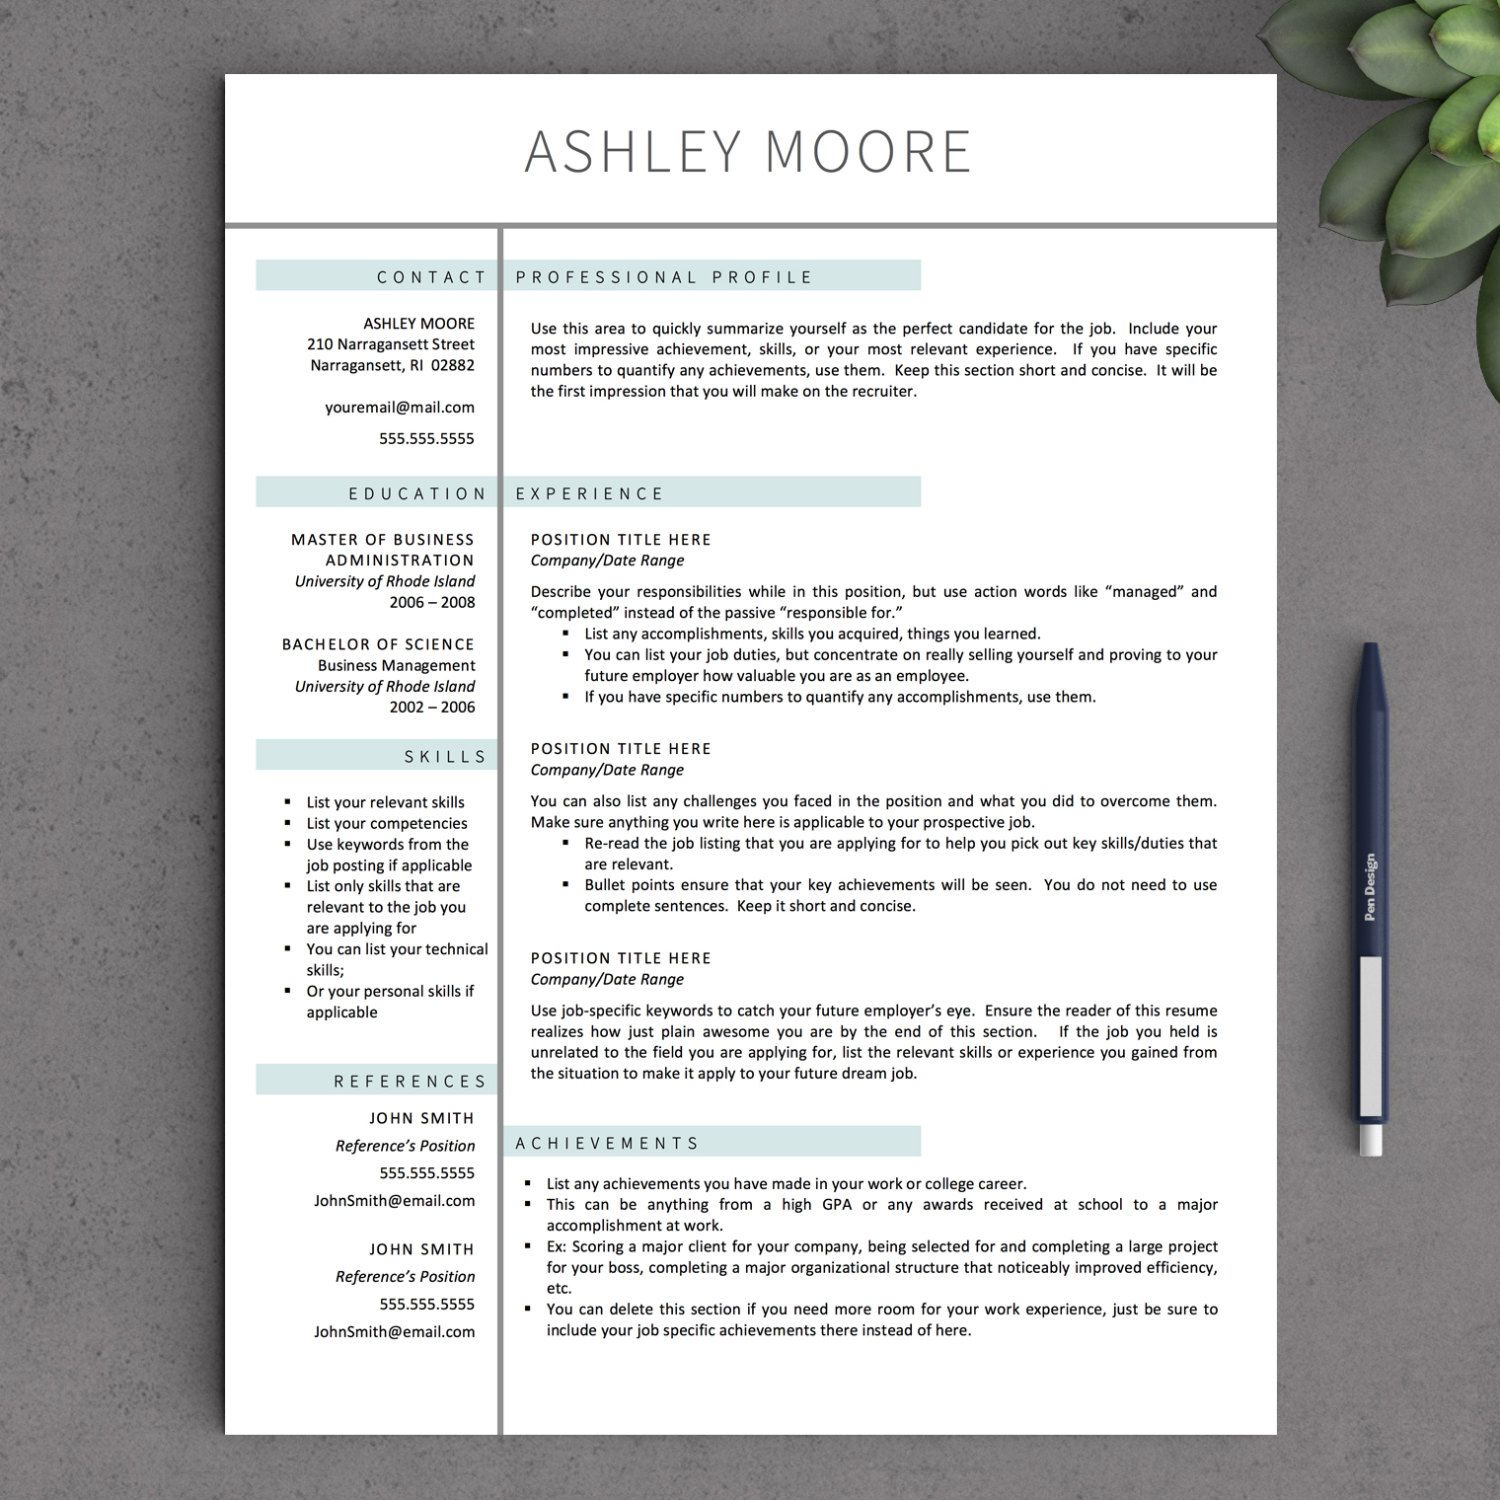 Cute 10 Envelope Template Tall 1099 Excel Template Square 2 Column Website Template 2014 Blank Calendar Template Youthful 2015 Calendars Templates Bright2015 Resume Keywords Resume Template For Pages | Resume Format Download Pdf